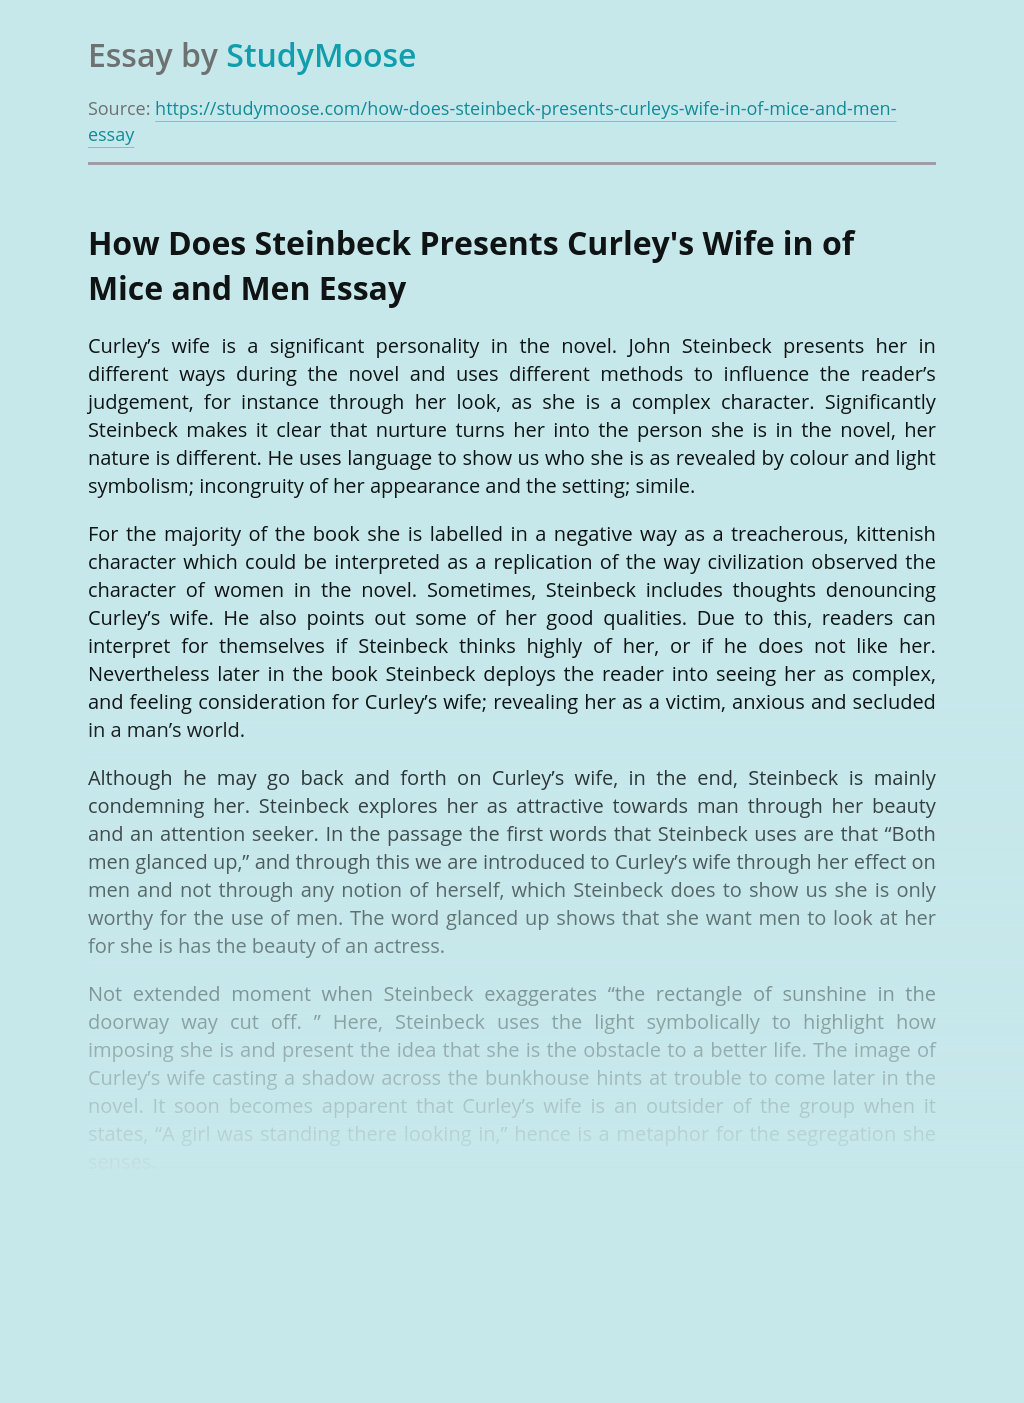 How Does Steinbeck Presents Curley's Wife in of Mice and Men